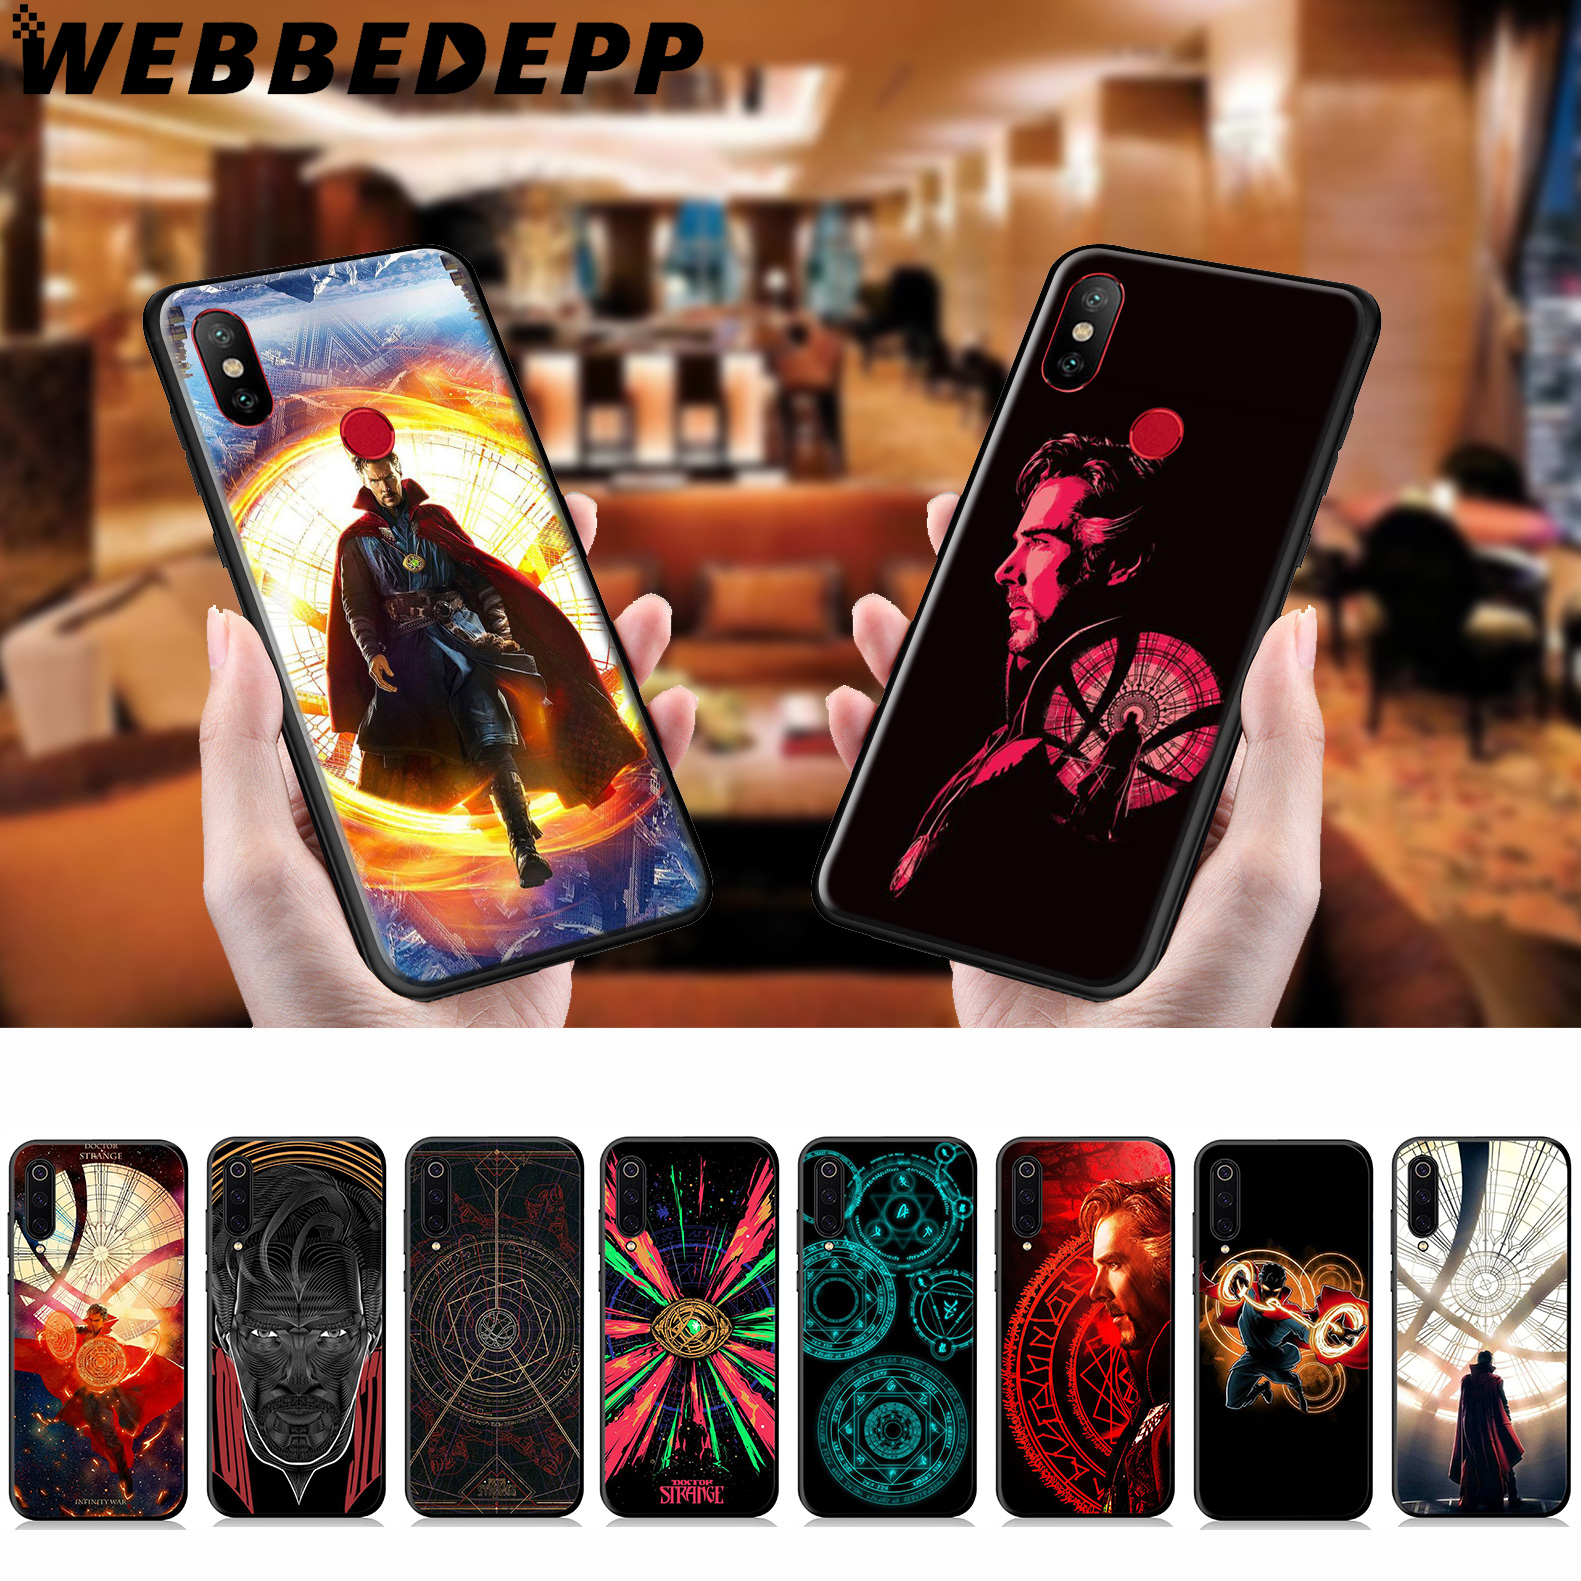 Webbedepp Doctor Strange Marvel Soft Case For Xiaomi Mi 9 8 Se 6 A1 A2 Lite Mia1 Mia2 Lite Mi F1 Max 3 Mi8 Pocophone F1 To Produce An Effect Toward Clear Vision Fitted Cases